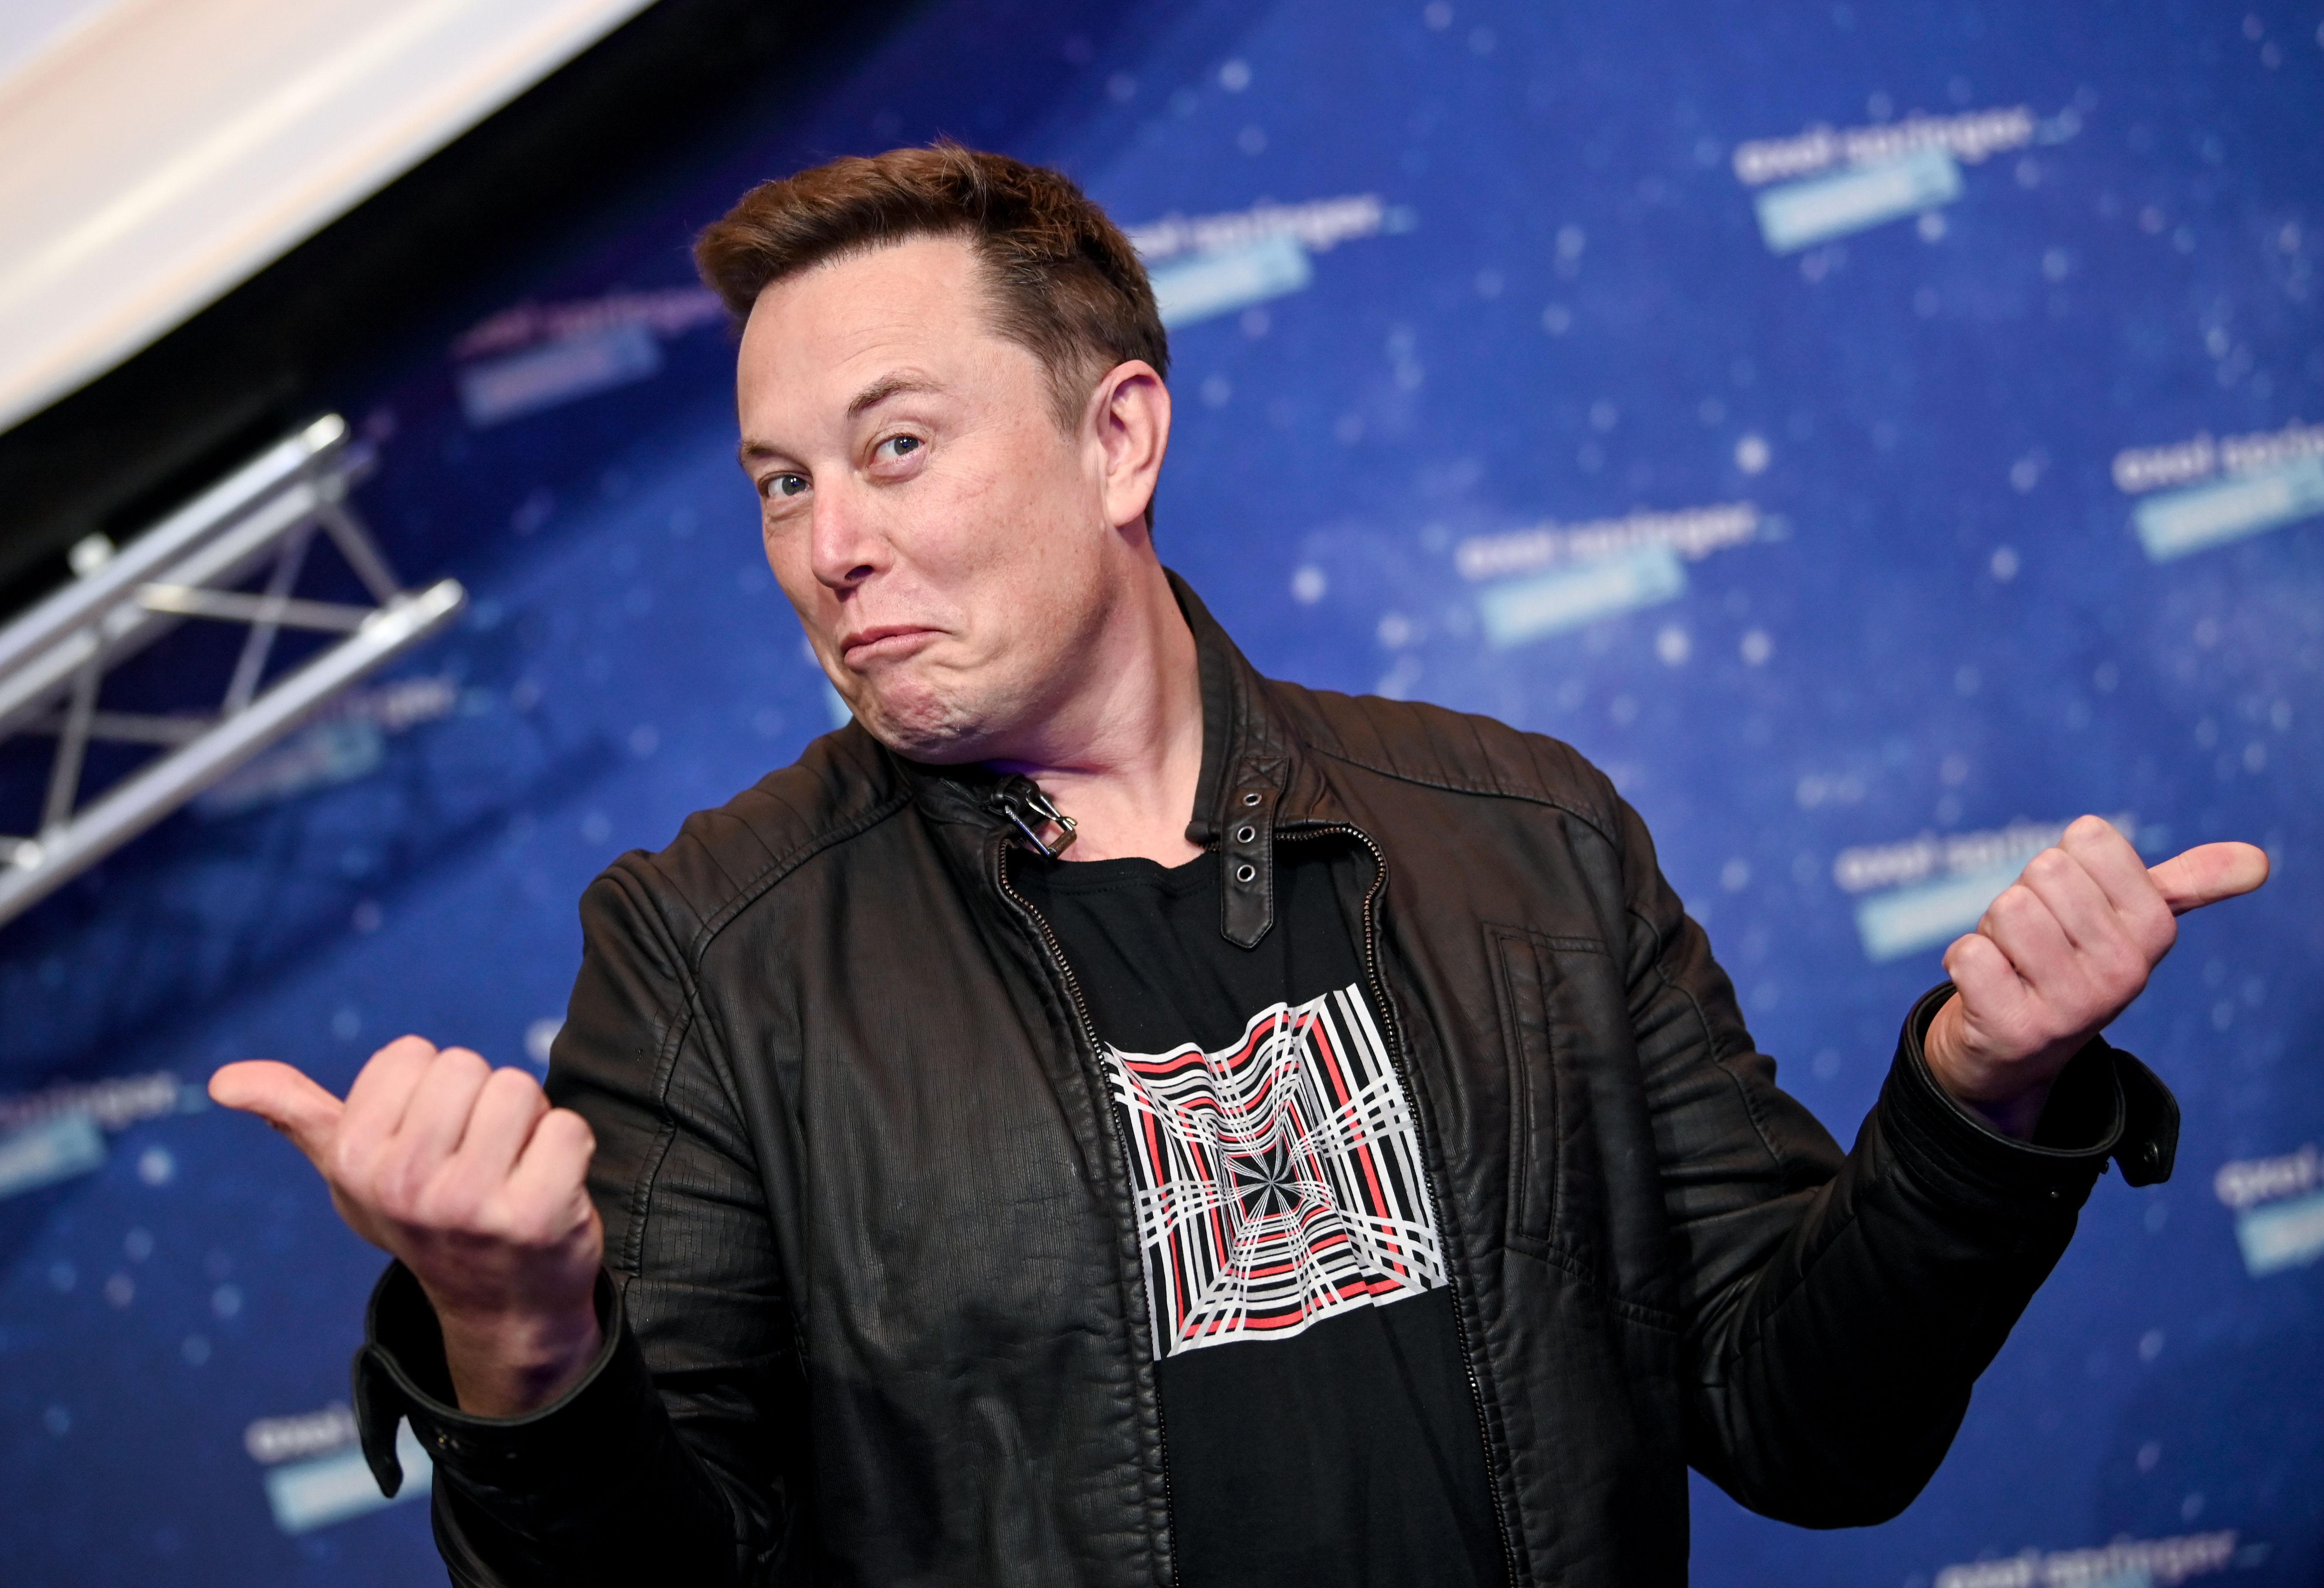 Elon Musk Swears He'll Send Humans to Mars by 2026. That Seems Impossible.